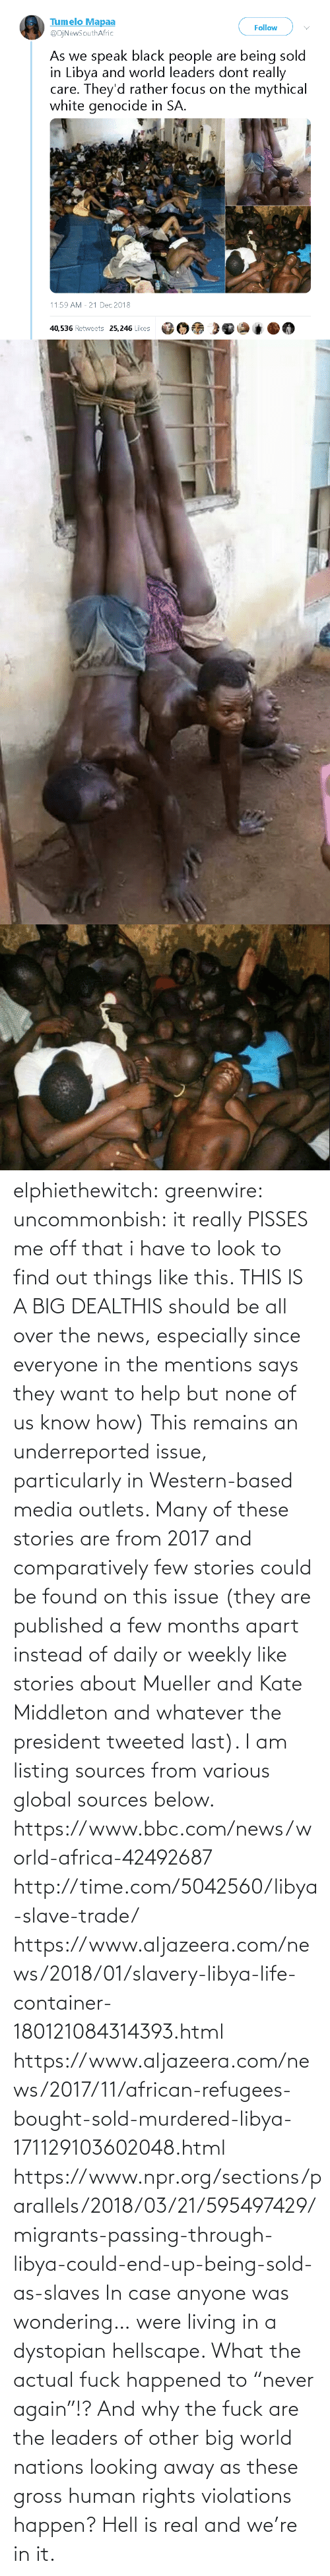 "Africa, Life, and News: elphiethewitch: greenwire:  uncommonbish:  it really PISSES me off that i have to look to find out things like this. THIS IS A BIG DEALTHIS should be all over the news, especially since everyone in the mentions says they want to help but none of us know how)  This remains an underreported issue, particularly in Western-based media outlets. Many of these stories are from 2017 and comparatively few stories could be found on this issue (they are published a few months apart instead of daily or weekly like stories about Mueller and Kate Middleton and whatever the president tweeted last). I am listing sources from various global sources below.  https://www.bbc.com/news/world-africa-42492687 http://time.com/5042560/libya-slave-trade/ https://www.aljazeera.com/news/2018/01/slavery-libya-life-container-180121084314393.html https://www.aljazeera.com/news/2017/11/african-refugees-bought-sold-murdered-libya-171129103602048.html https://www.npr.org/sections/parallels/2018/03/21/595497429/migrants-passing-through-libya-could-end-up-being-sold-as-slaves   In case anyone was wondering… were living in a dystopian hellscape.  What the actual fuck happened to ""never again""!? And why the fuck are the leaders of other big world nations looking away as these gross human rights violations happen?  Hell is real and we're in it."